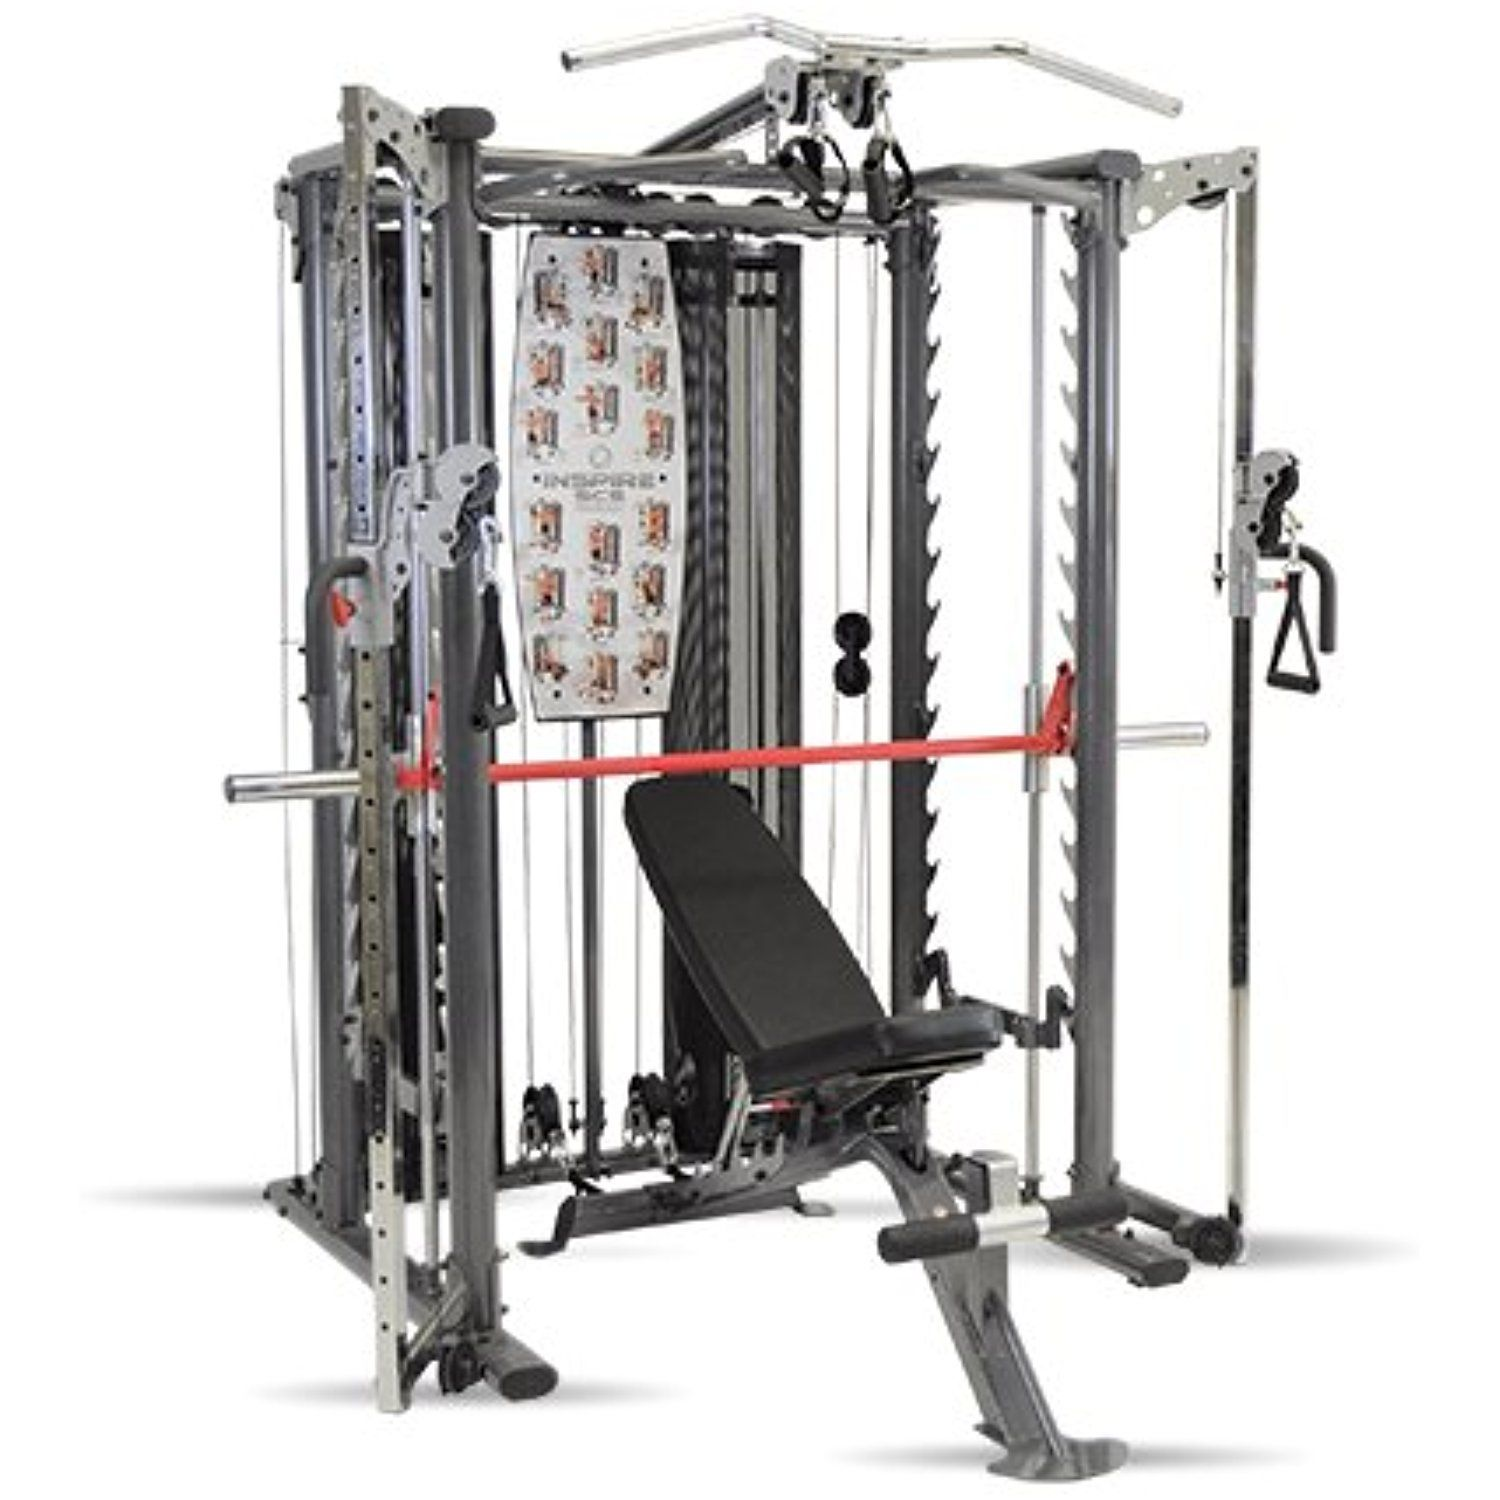 Inspire fitness scs smith system cage system